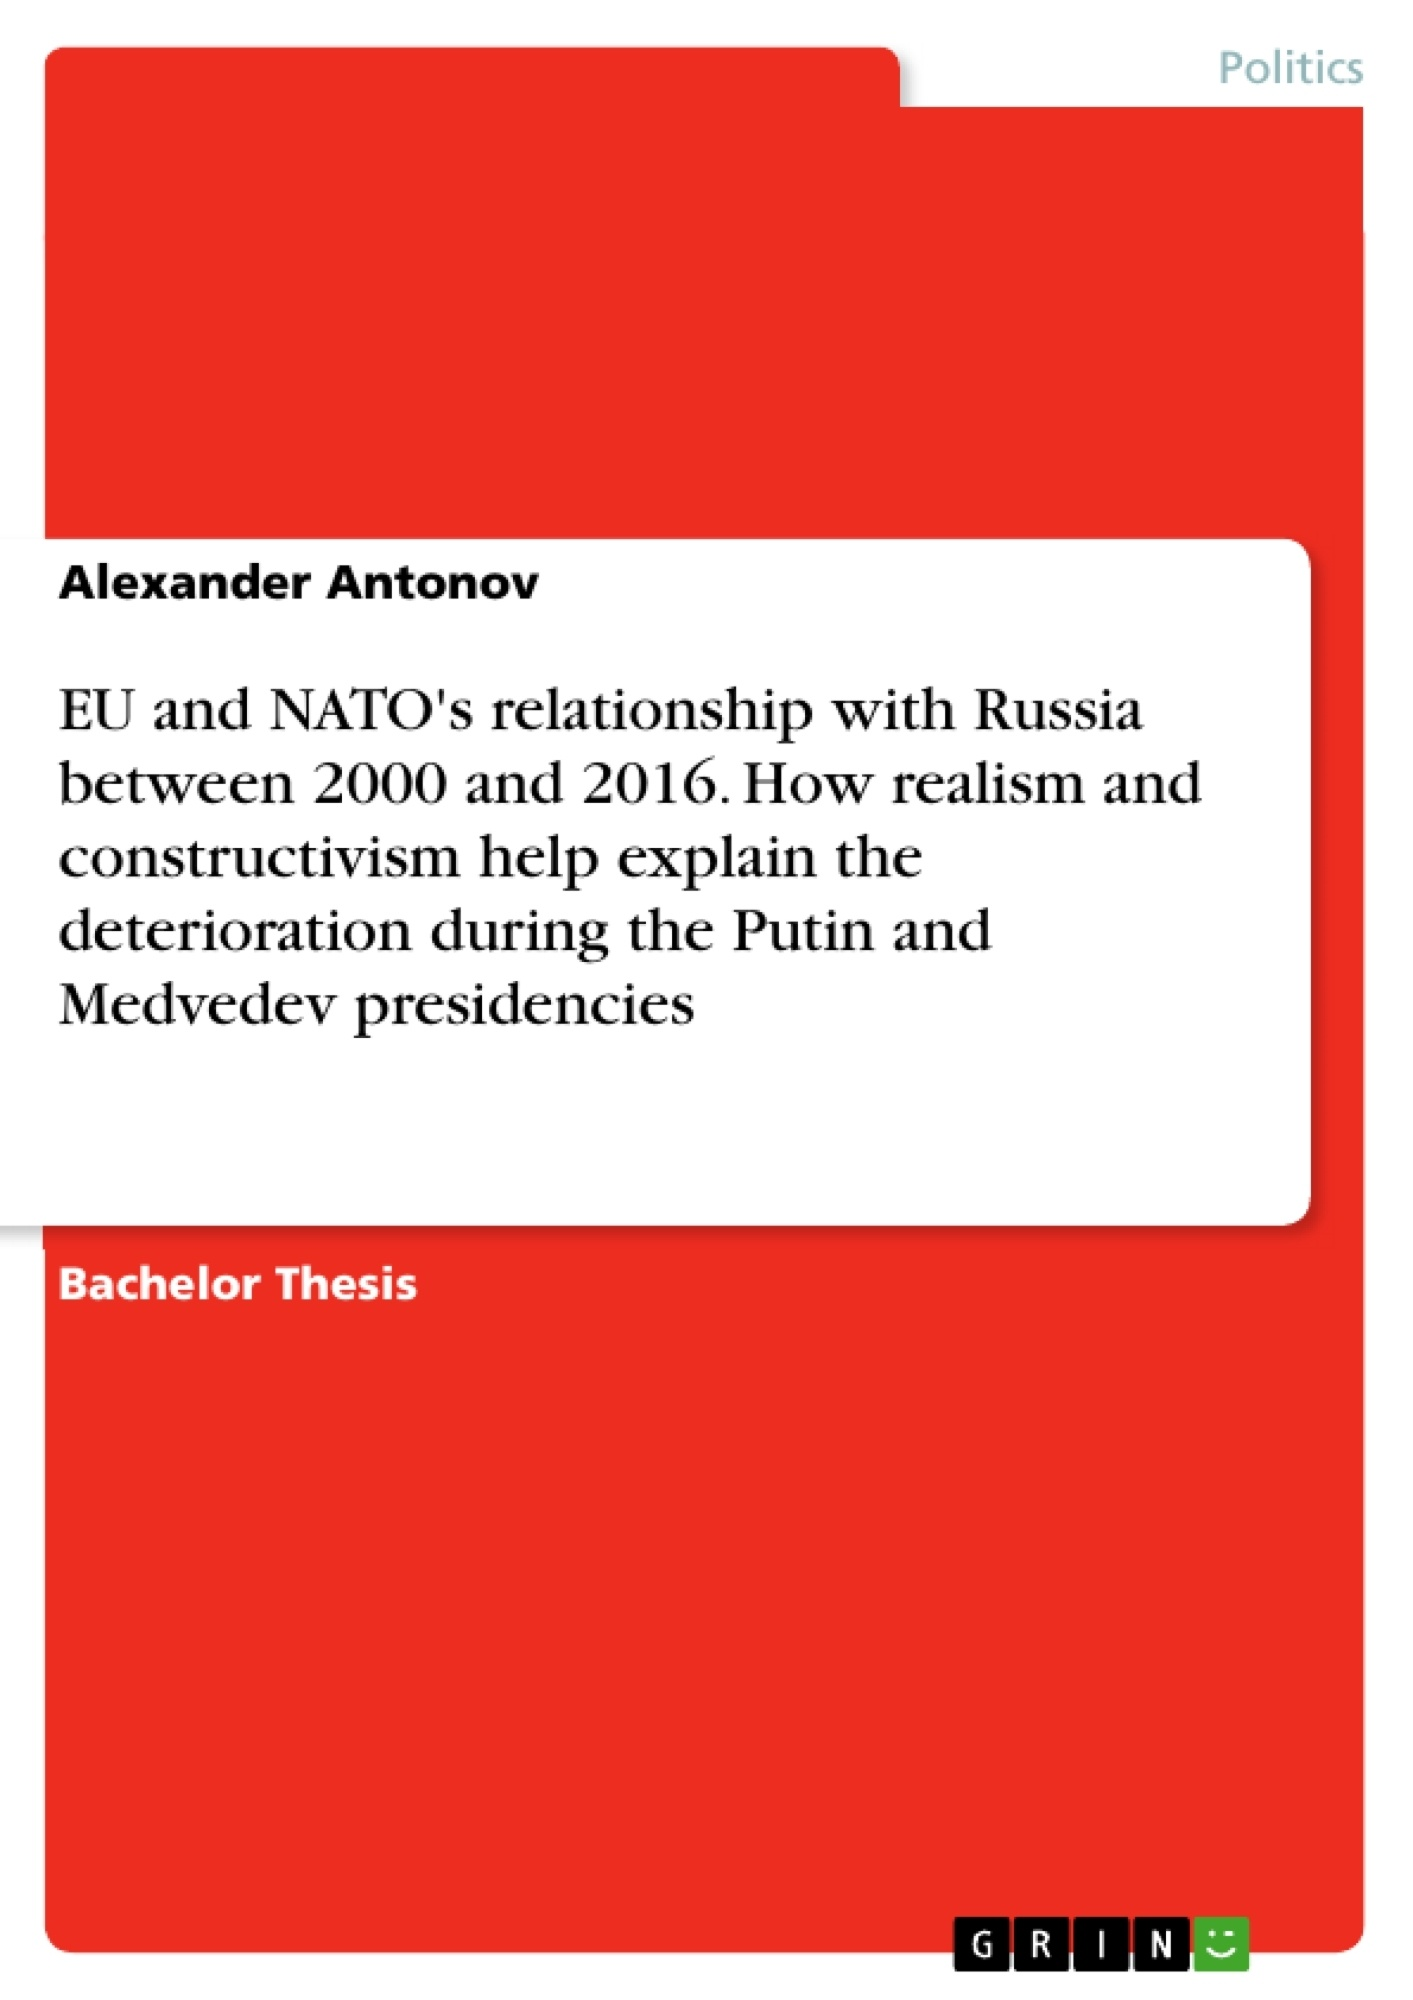 Title: EU and NATO's relationship with Russia between 2000 and 2016. How realism and constructivism help explain the deterioration during the Putin and Medvedev presidencies